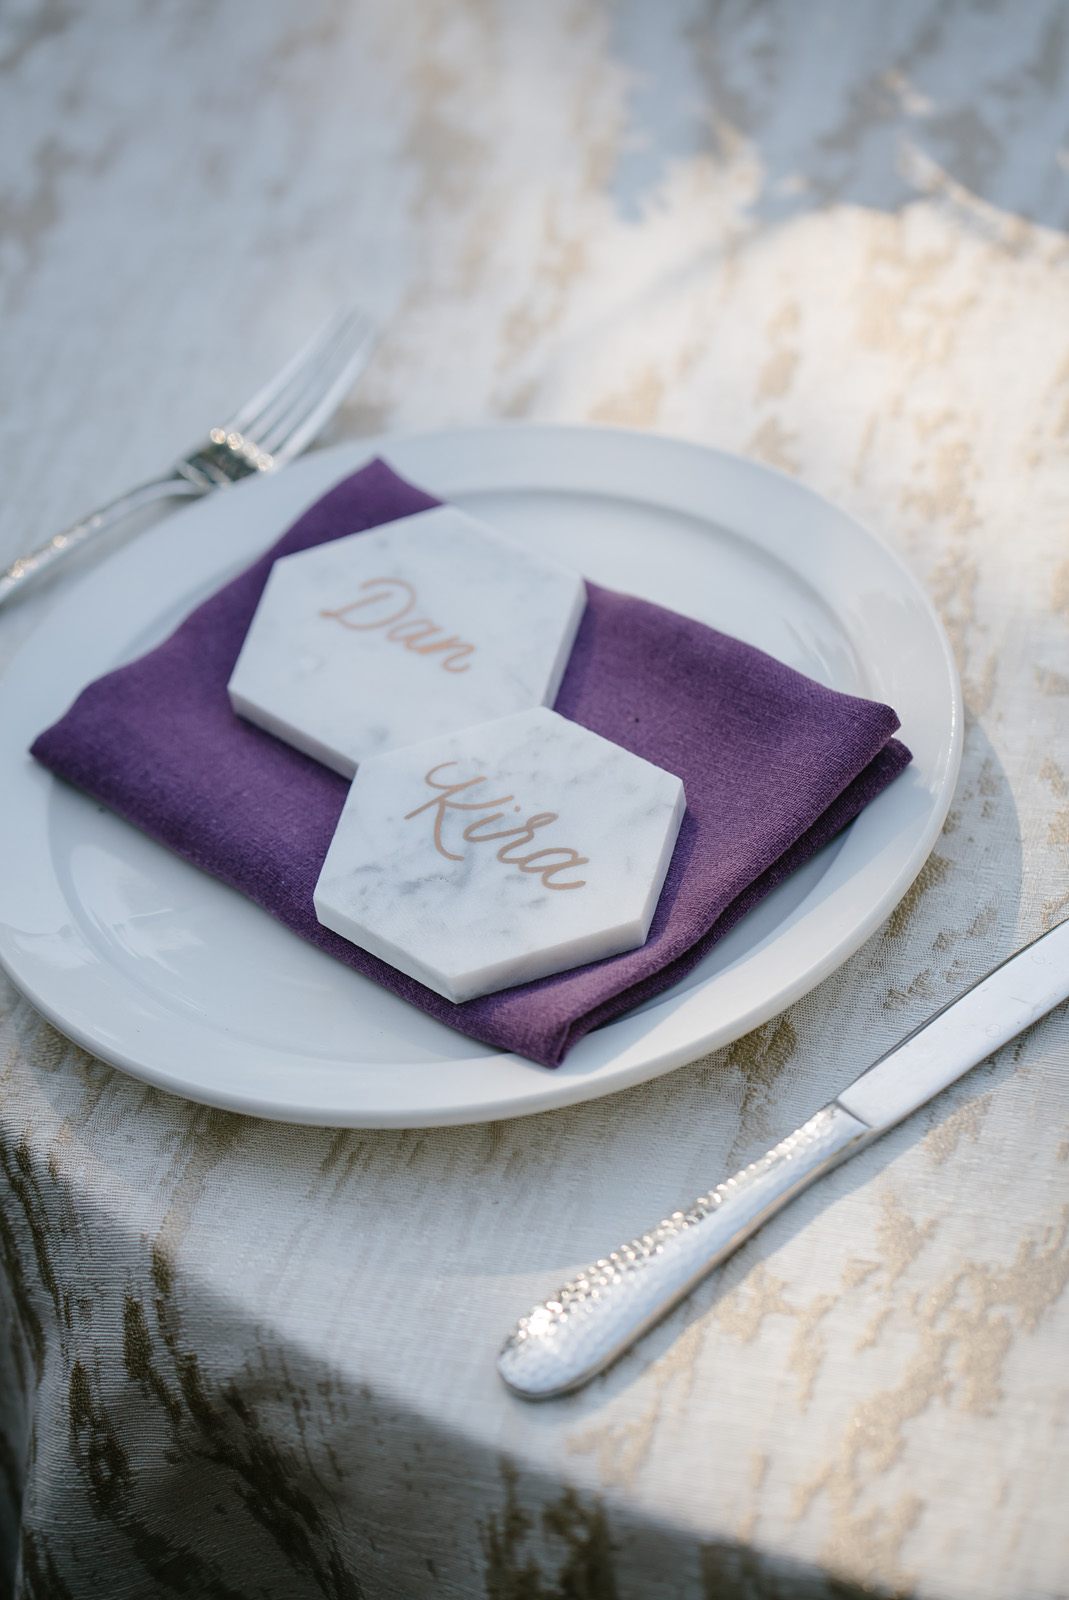 Pantone Color of the Year 2018 Ultra Violet wedding ideas purple napkin at place setting